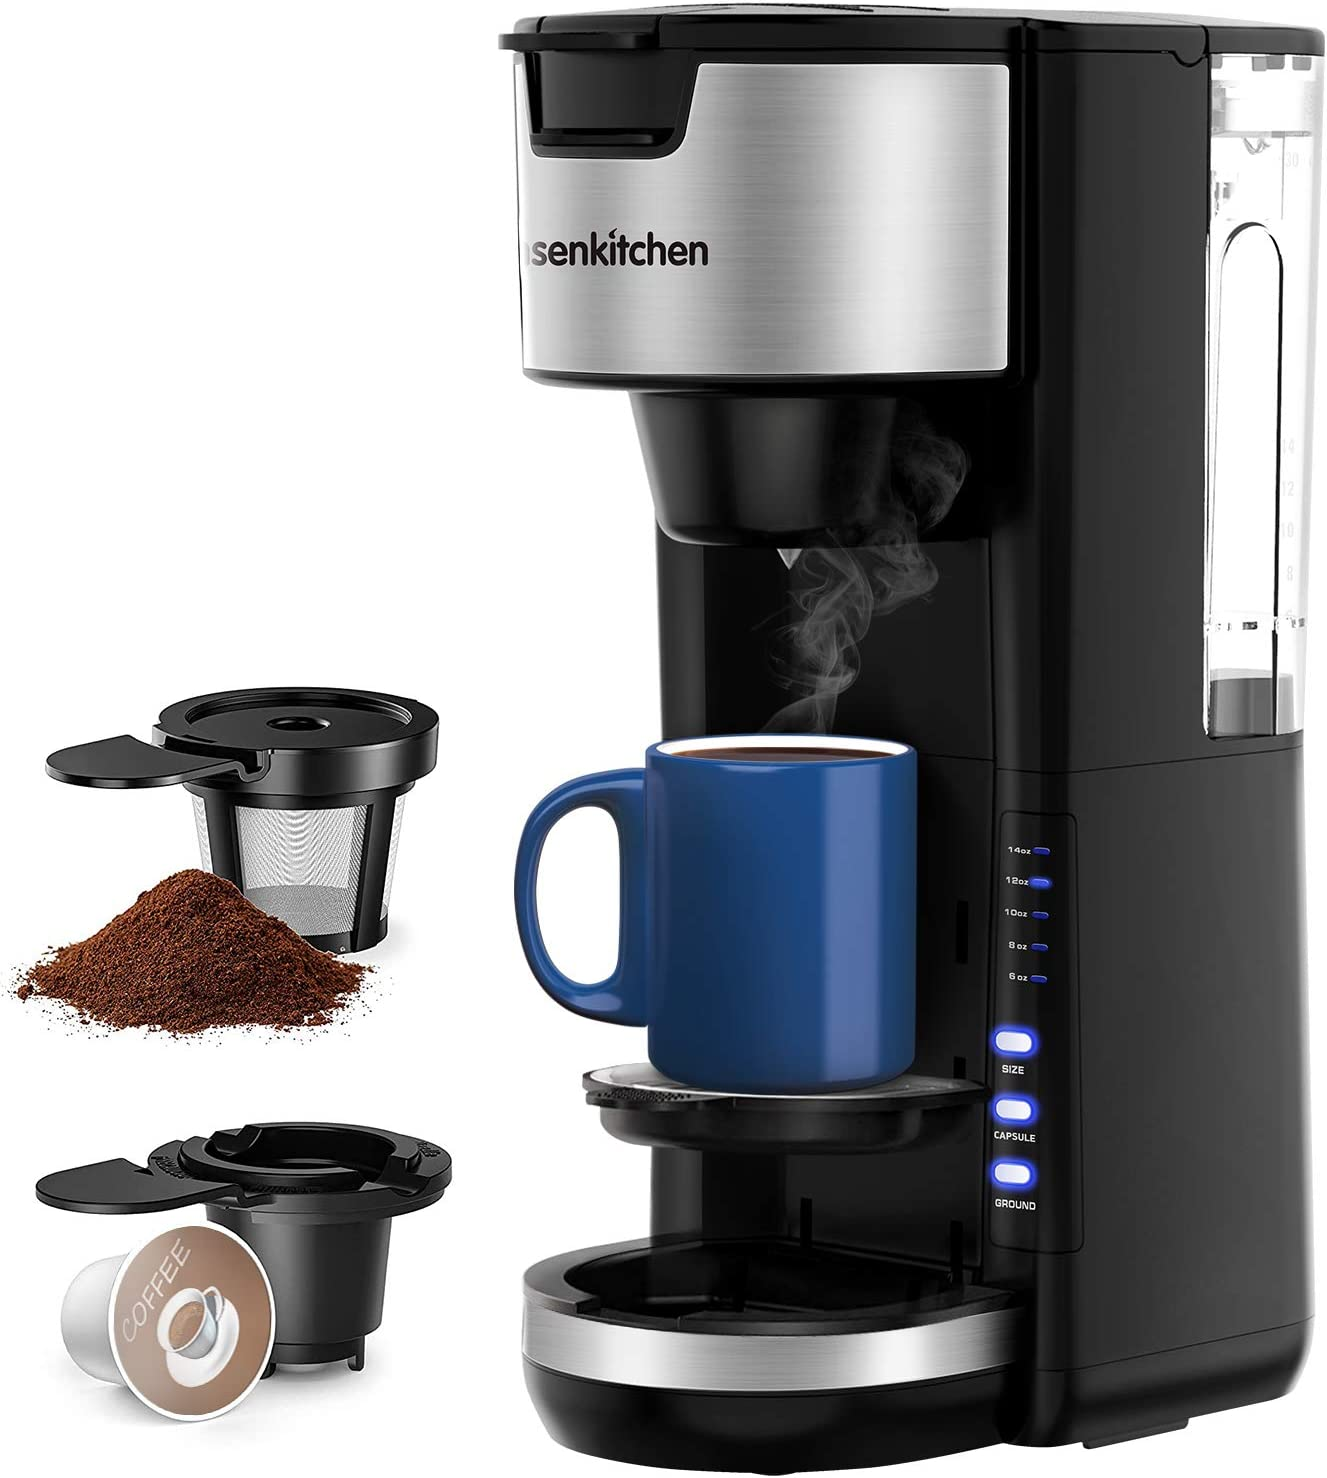 Amazon Com Singles Serve Coffee Makers For K Cup Pod Coffee Ground Mini 2 In 1 Coffee Maker Machines 30 Oz Reservoir Brew Strength Control Small Coffee Brewer Machine For Office Home